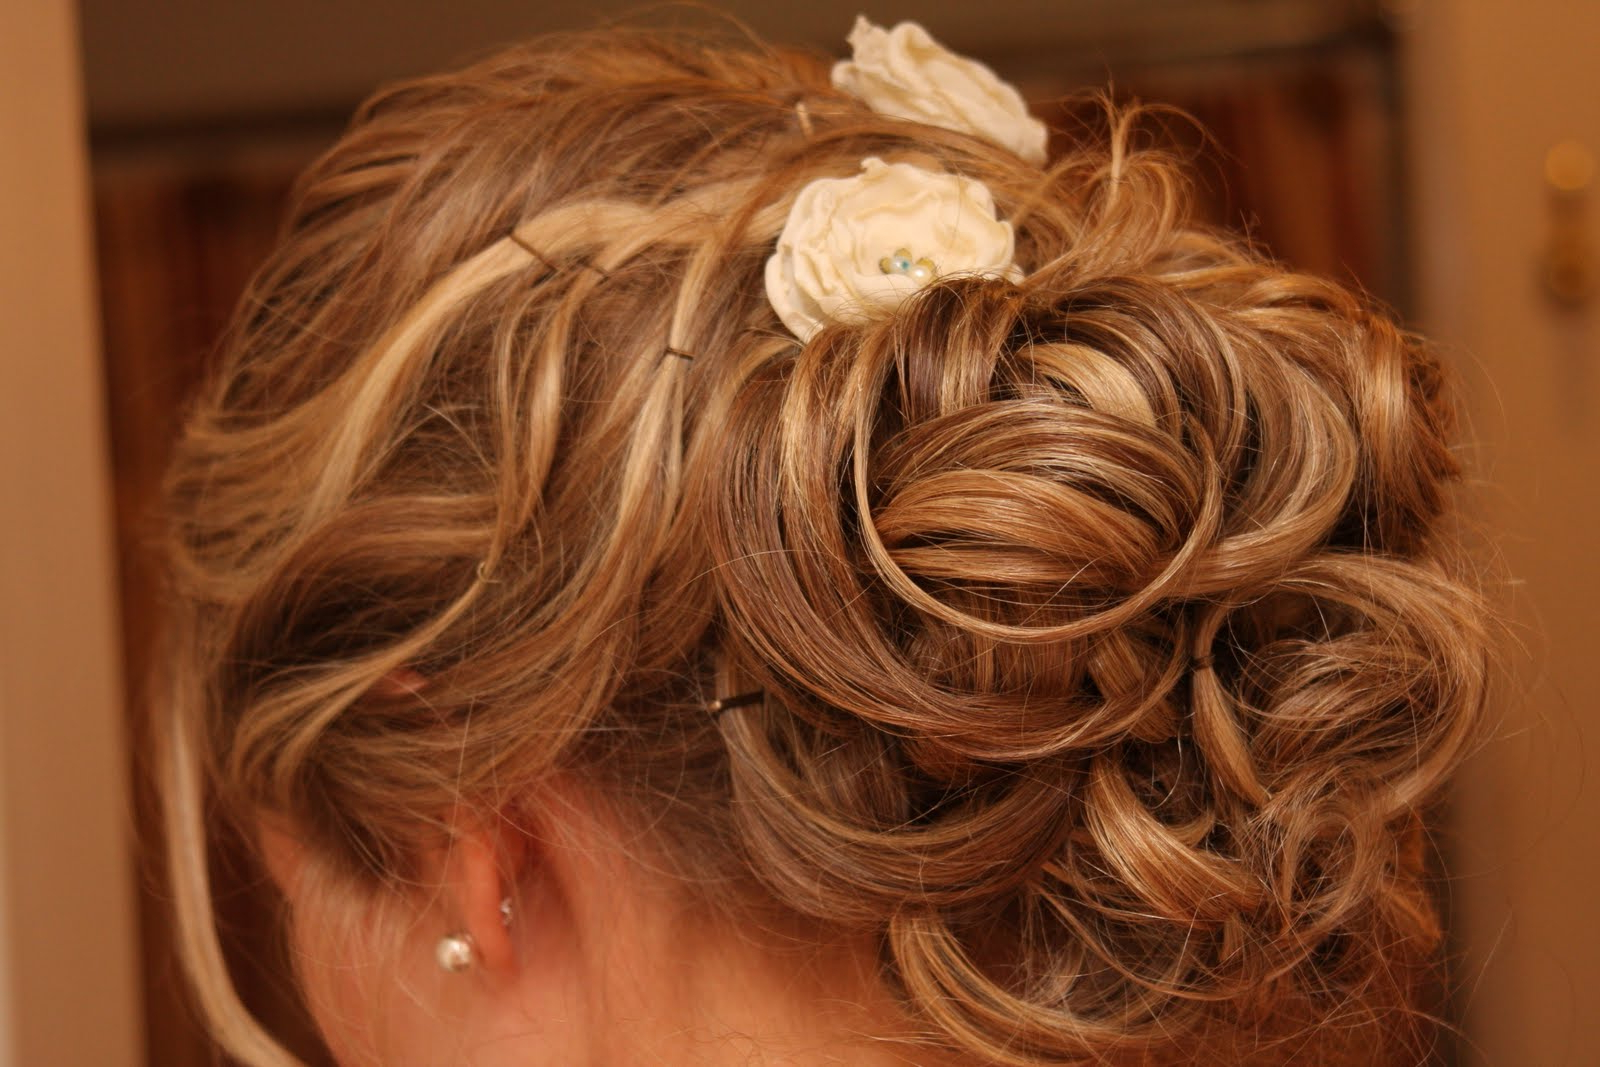 Hairstylo In Well Known Low Messy Bun Wedding Hairstyles For Fine Hair (View 10 of 20)